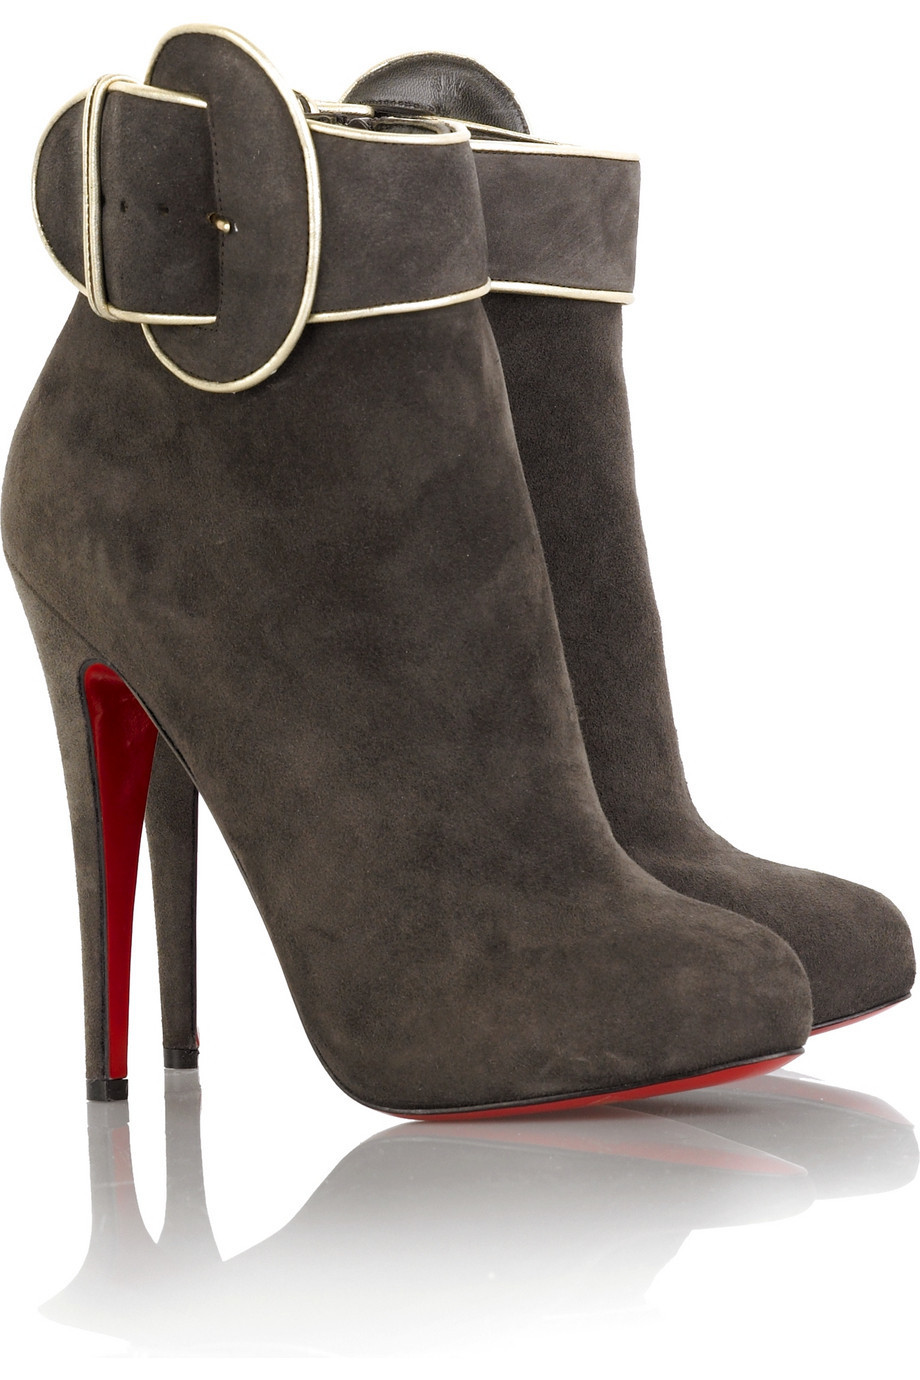 Christian Louboutin Trottinette ankle boots | NET-A-PORTER.COM from net-a-porter.com